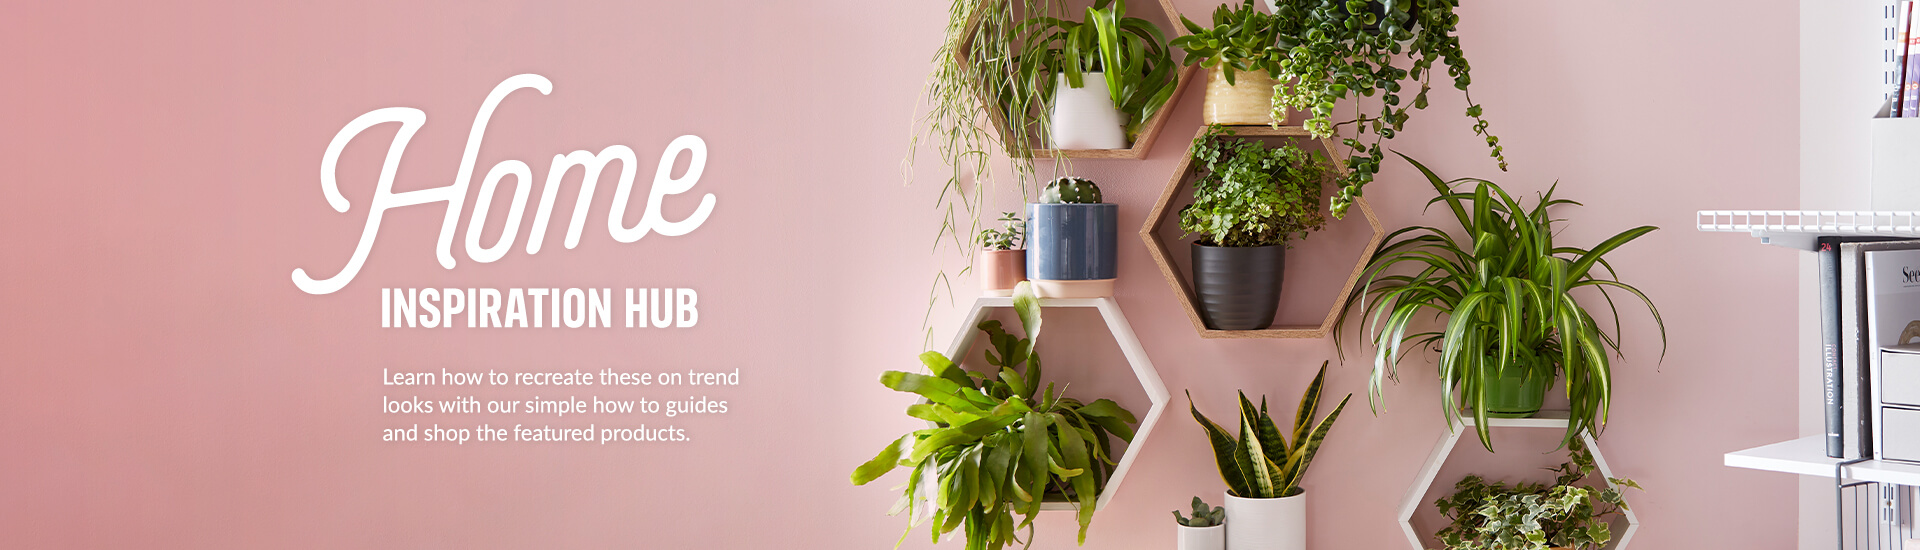 Home inspiration hub. Learn how to recreate these on trend looks with our simple how to guides and shop the featured products.